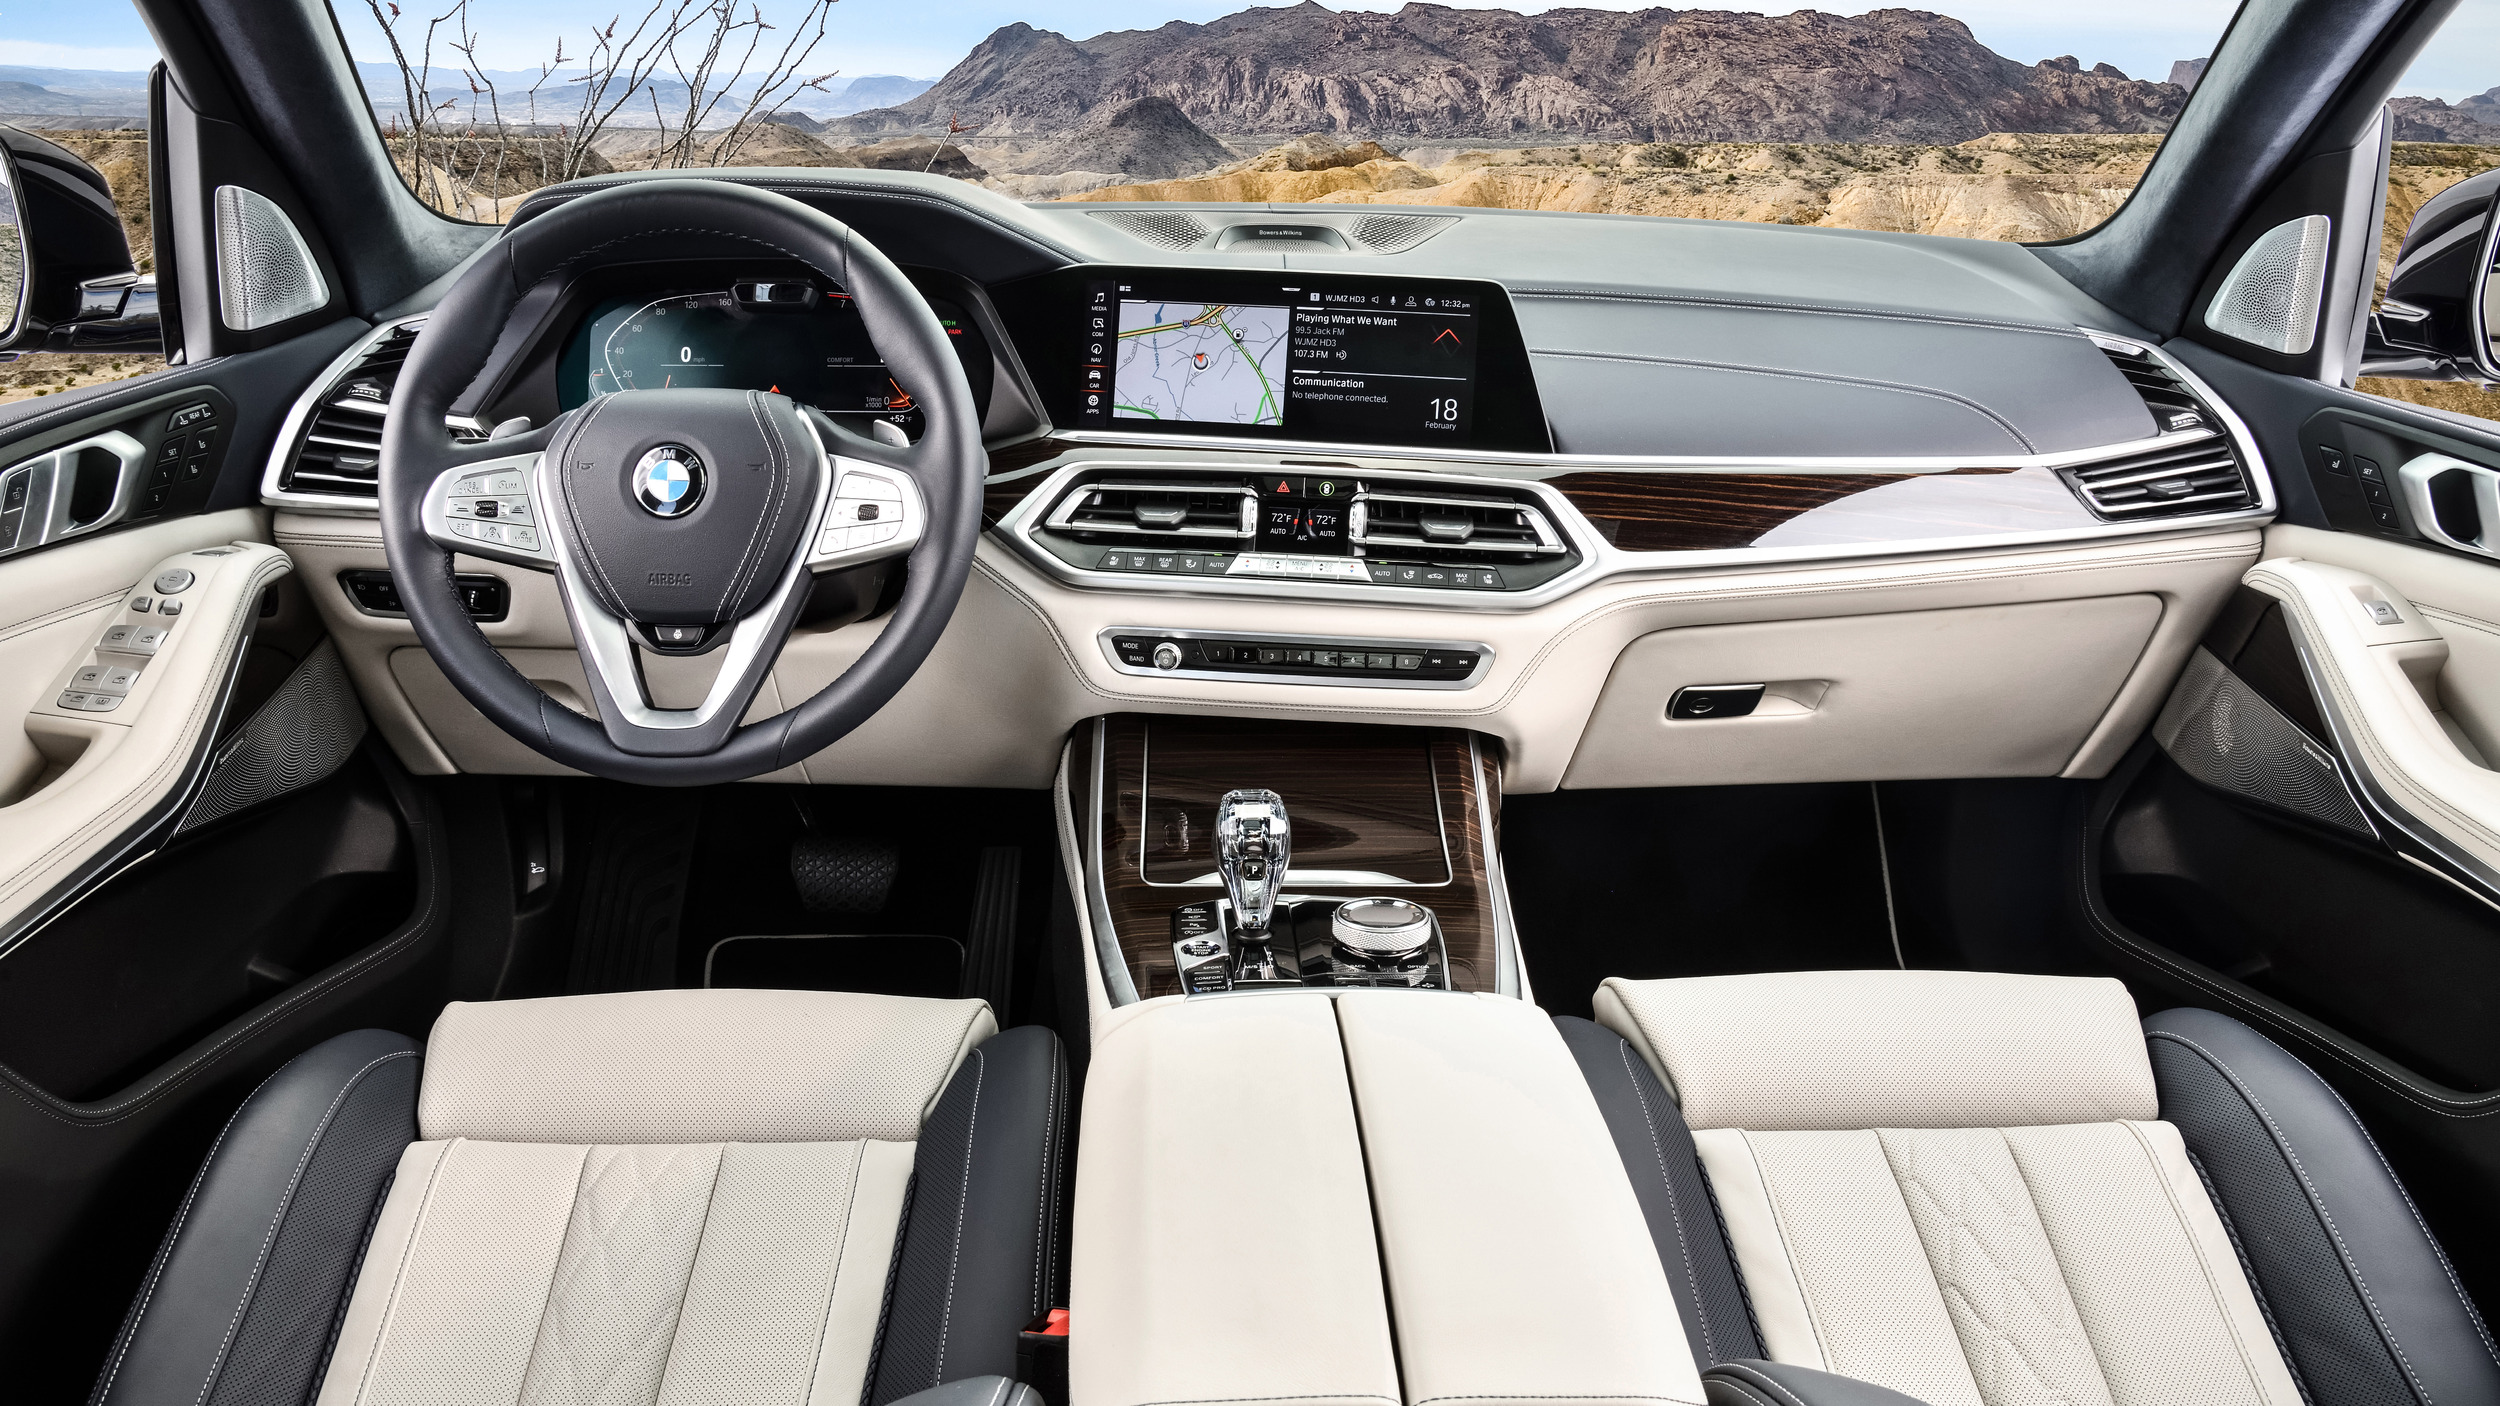 Interior Pictures Of Bmw X7I